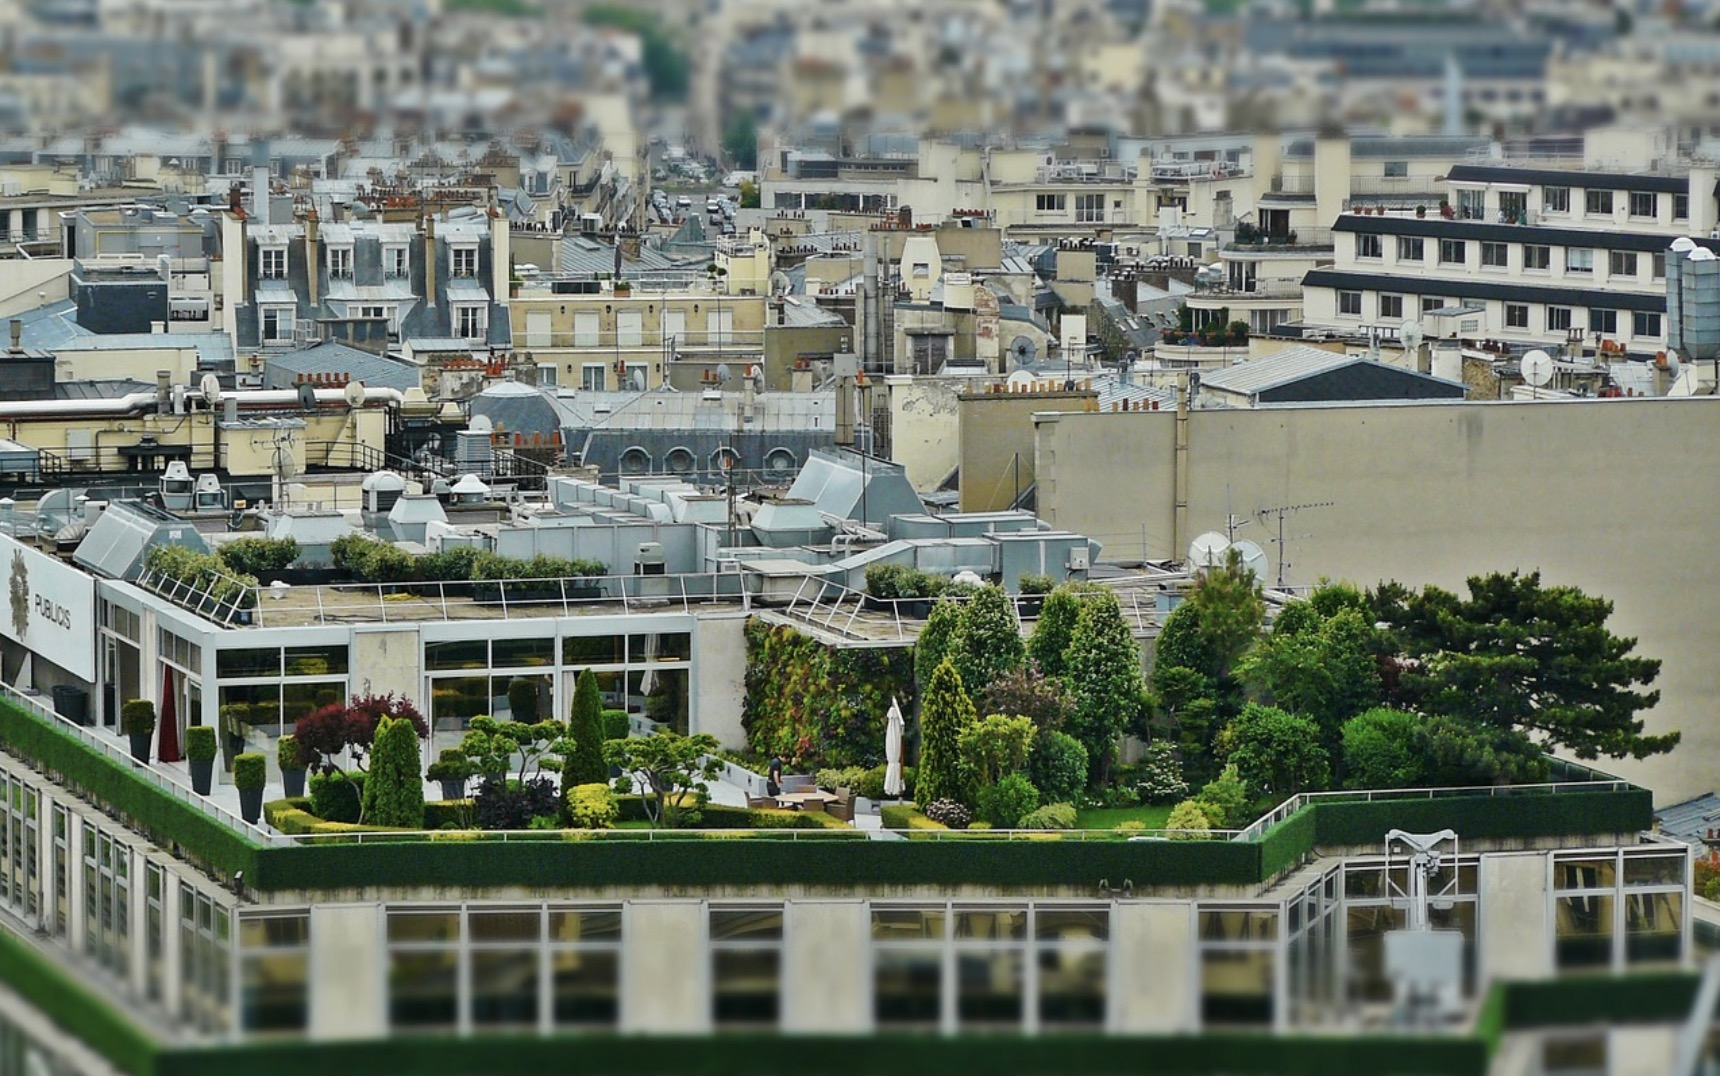 green roofs with trees and plants